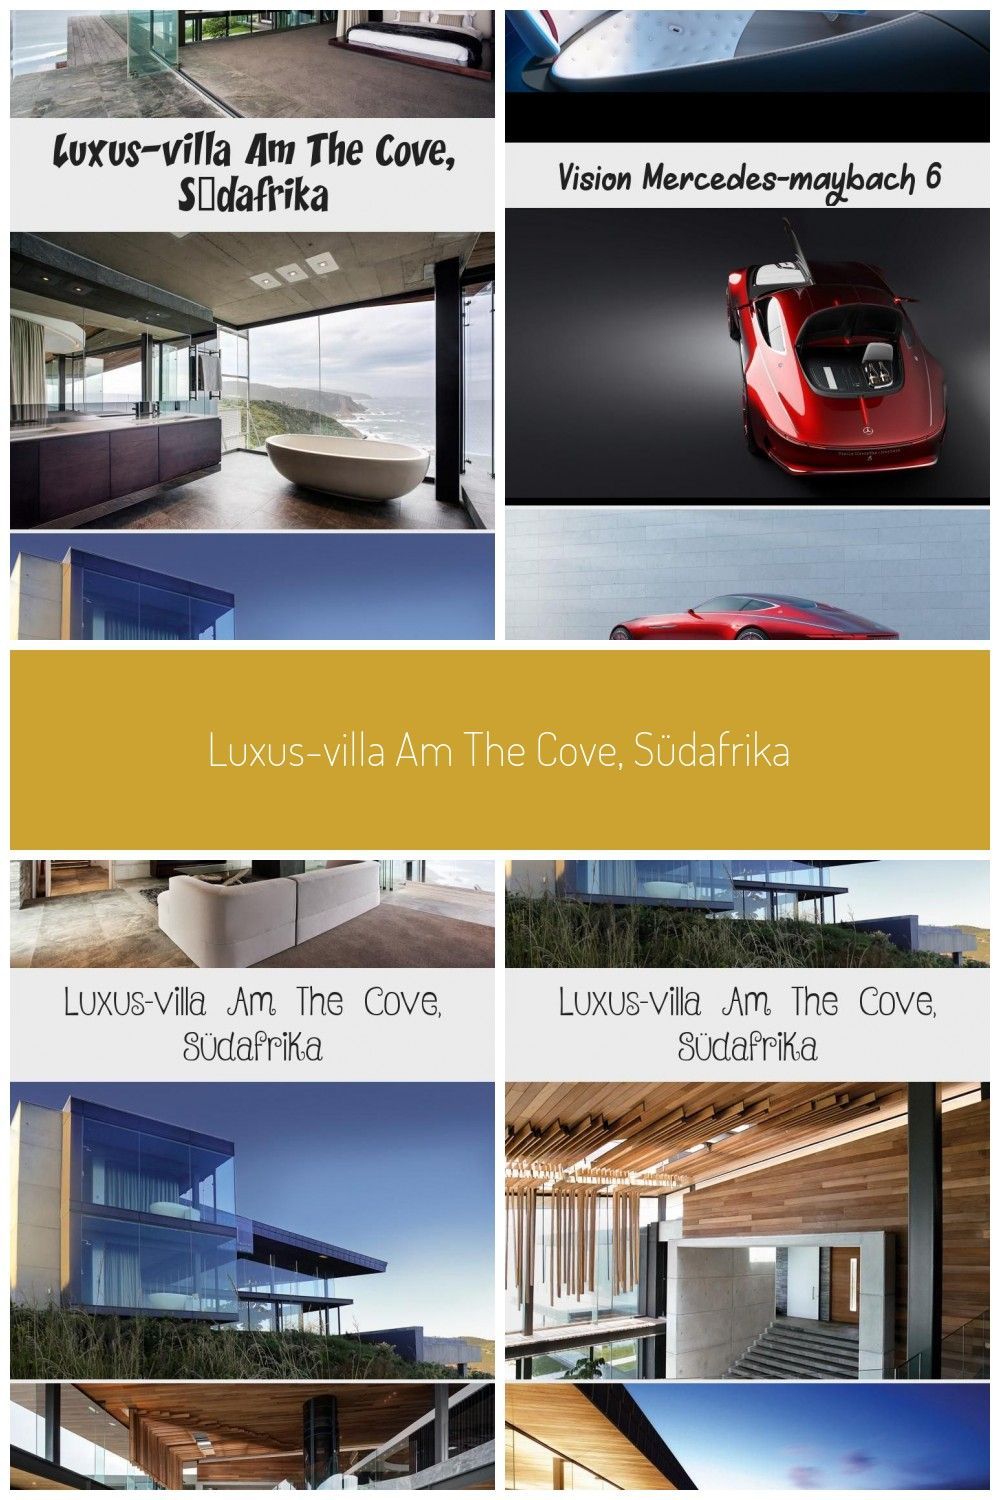 Photo of Luxury Villa on The Cove South Africa #LuxuryVilla #am #The #Cove #Sdafrica #d